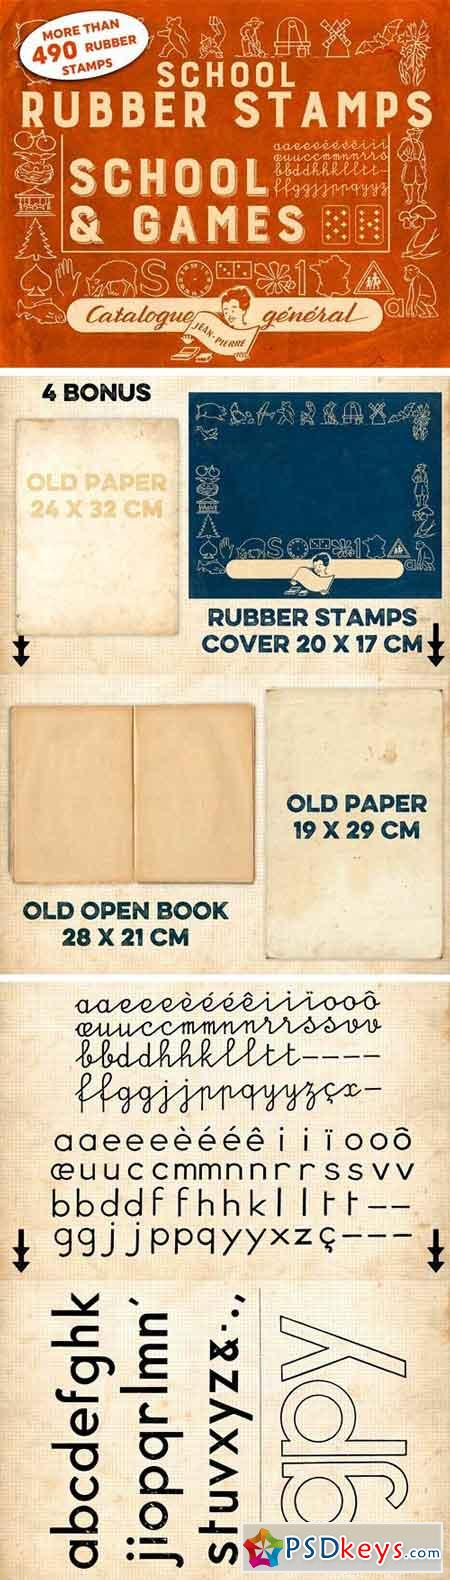 RUBBER STAMPS SCHOOL+GAMES +4 BONUS 1331597